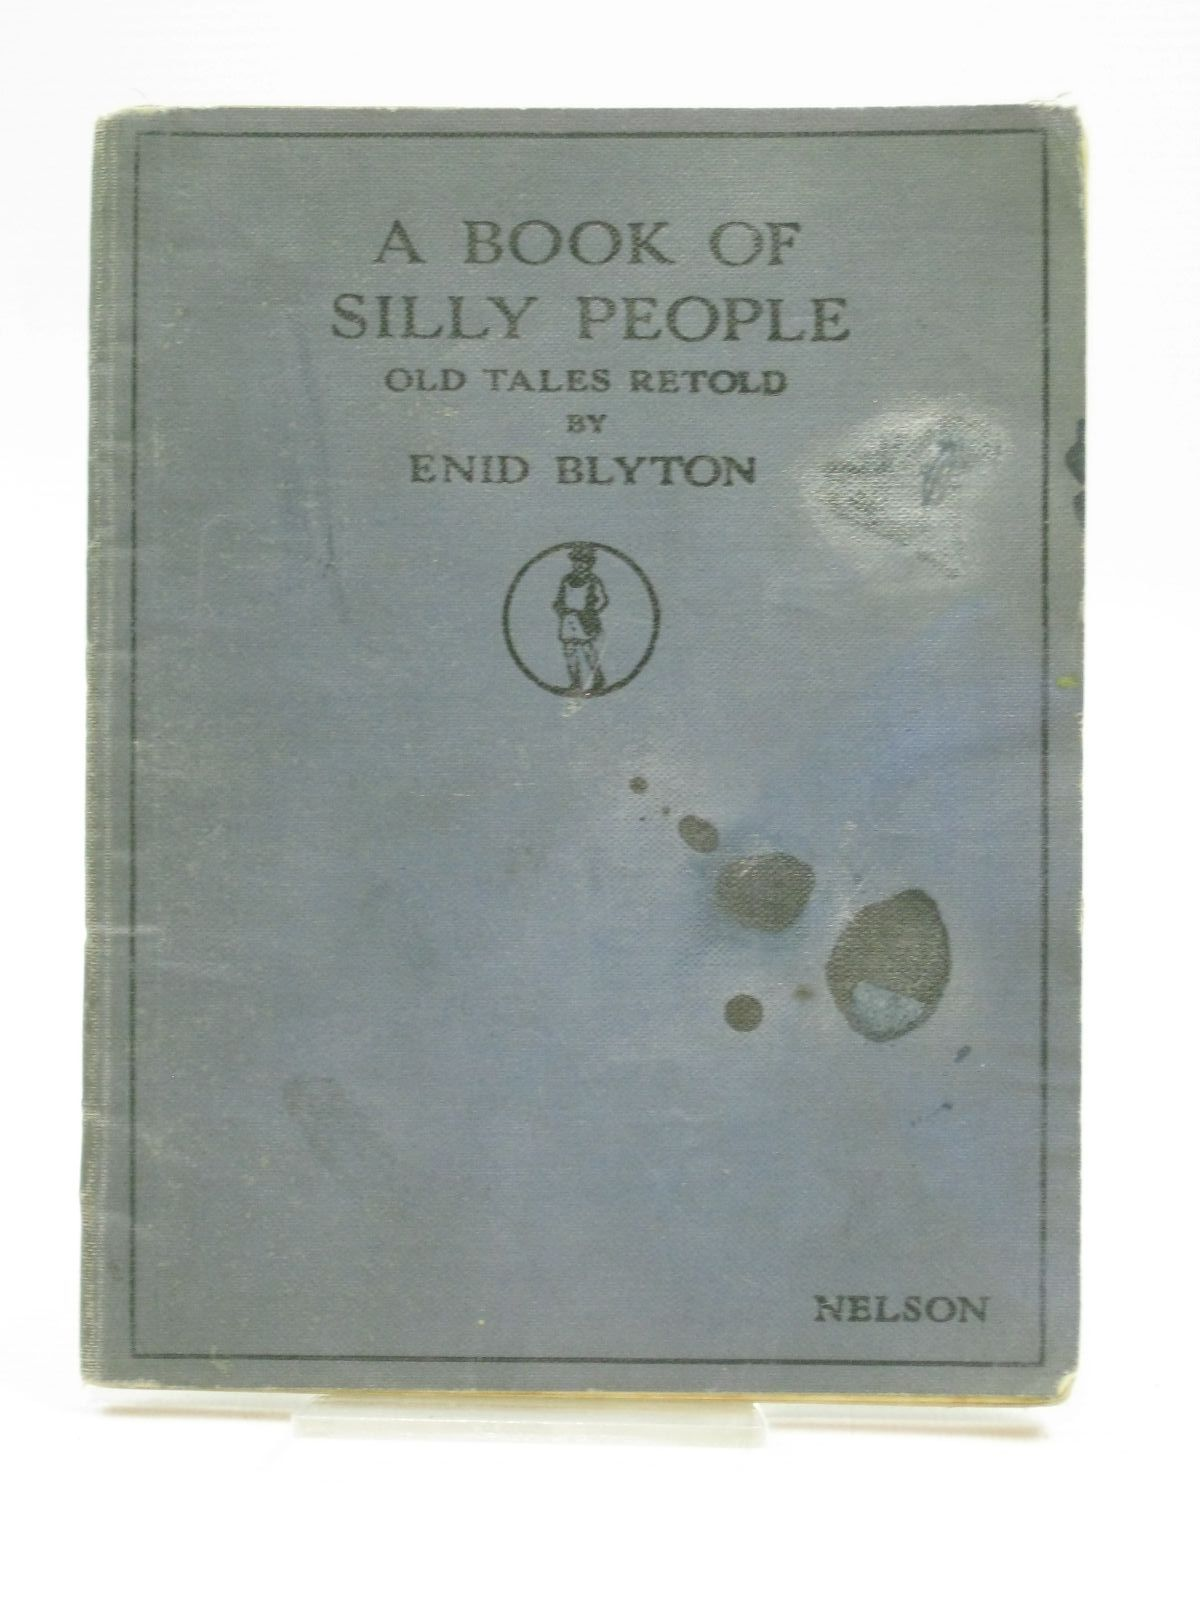 Rare books, collectible books & 2nd hand books published